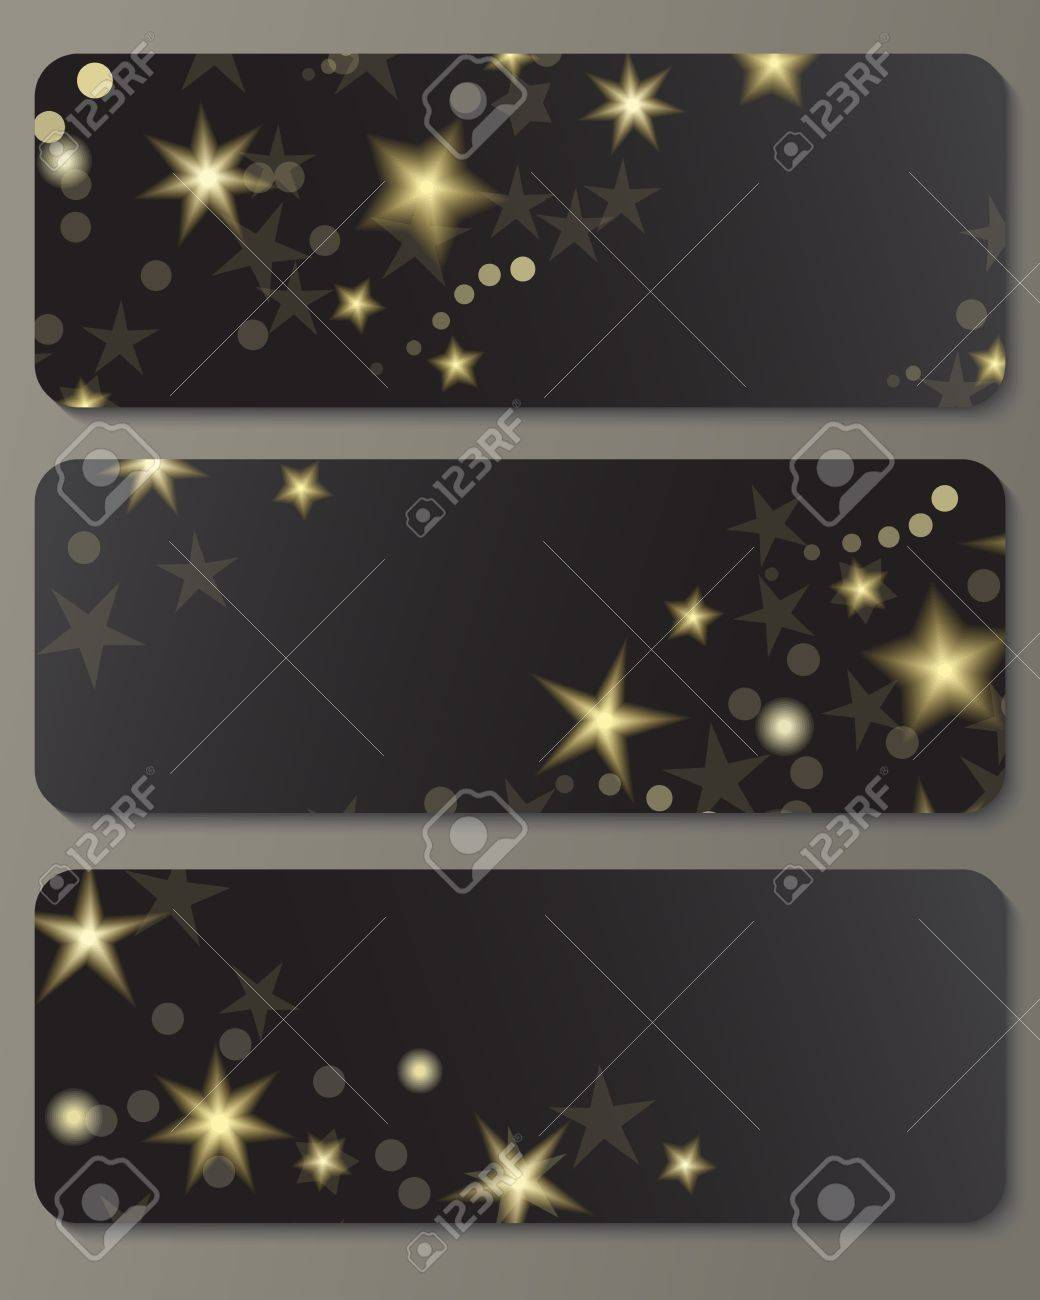 Banners with shiny golden stars against black background  Great holiday design Stock Vector - 19601354